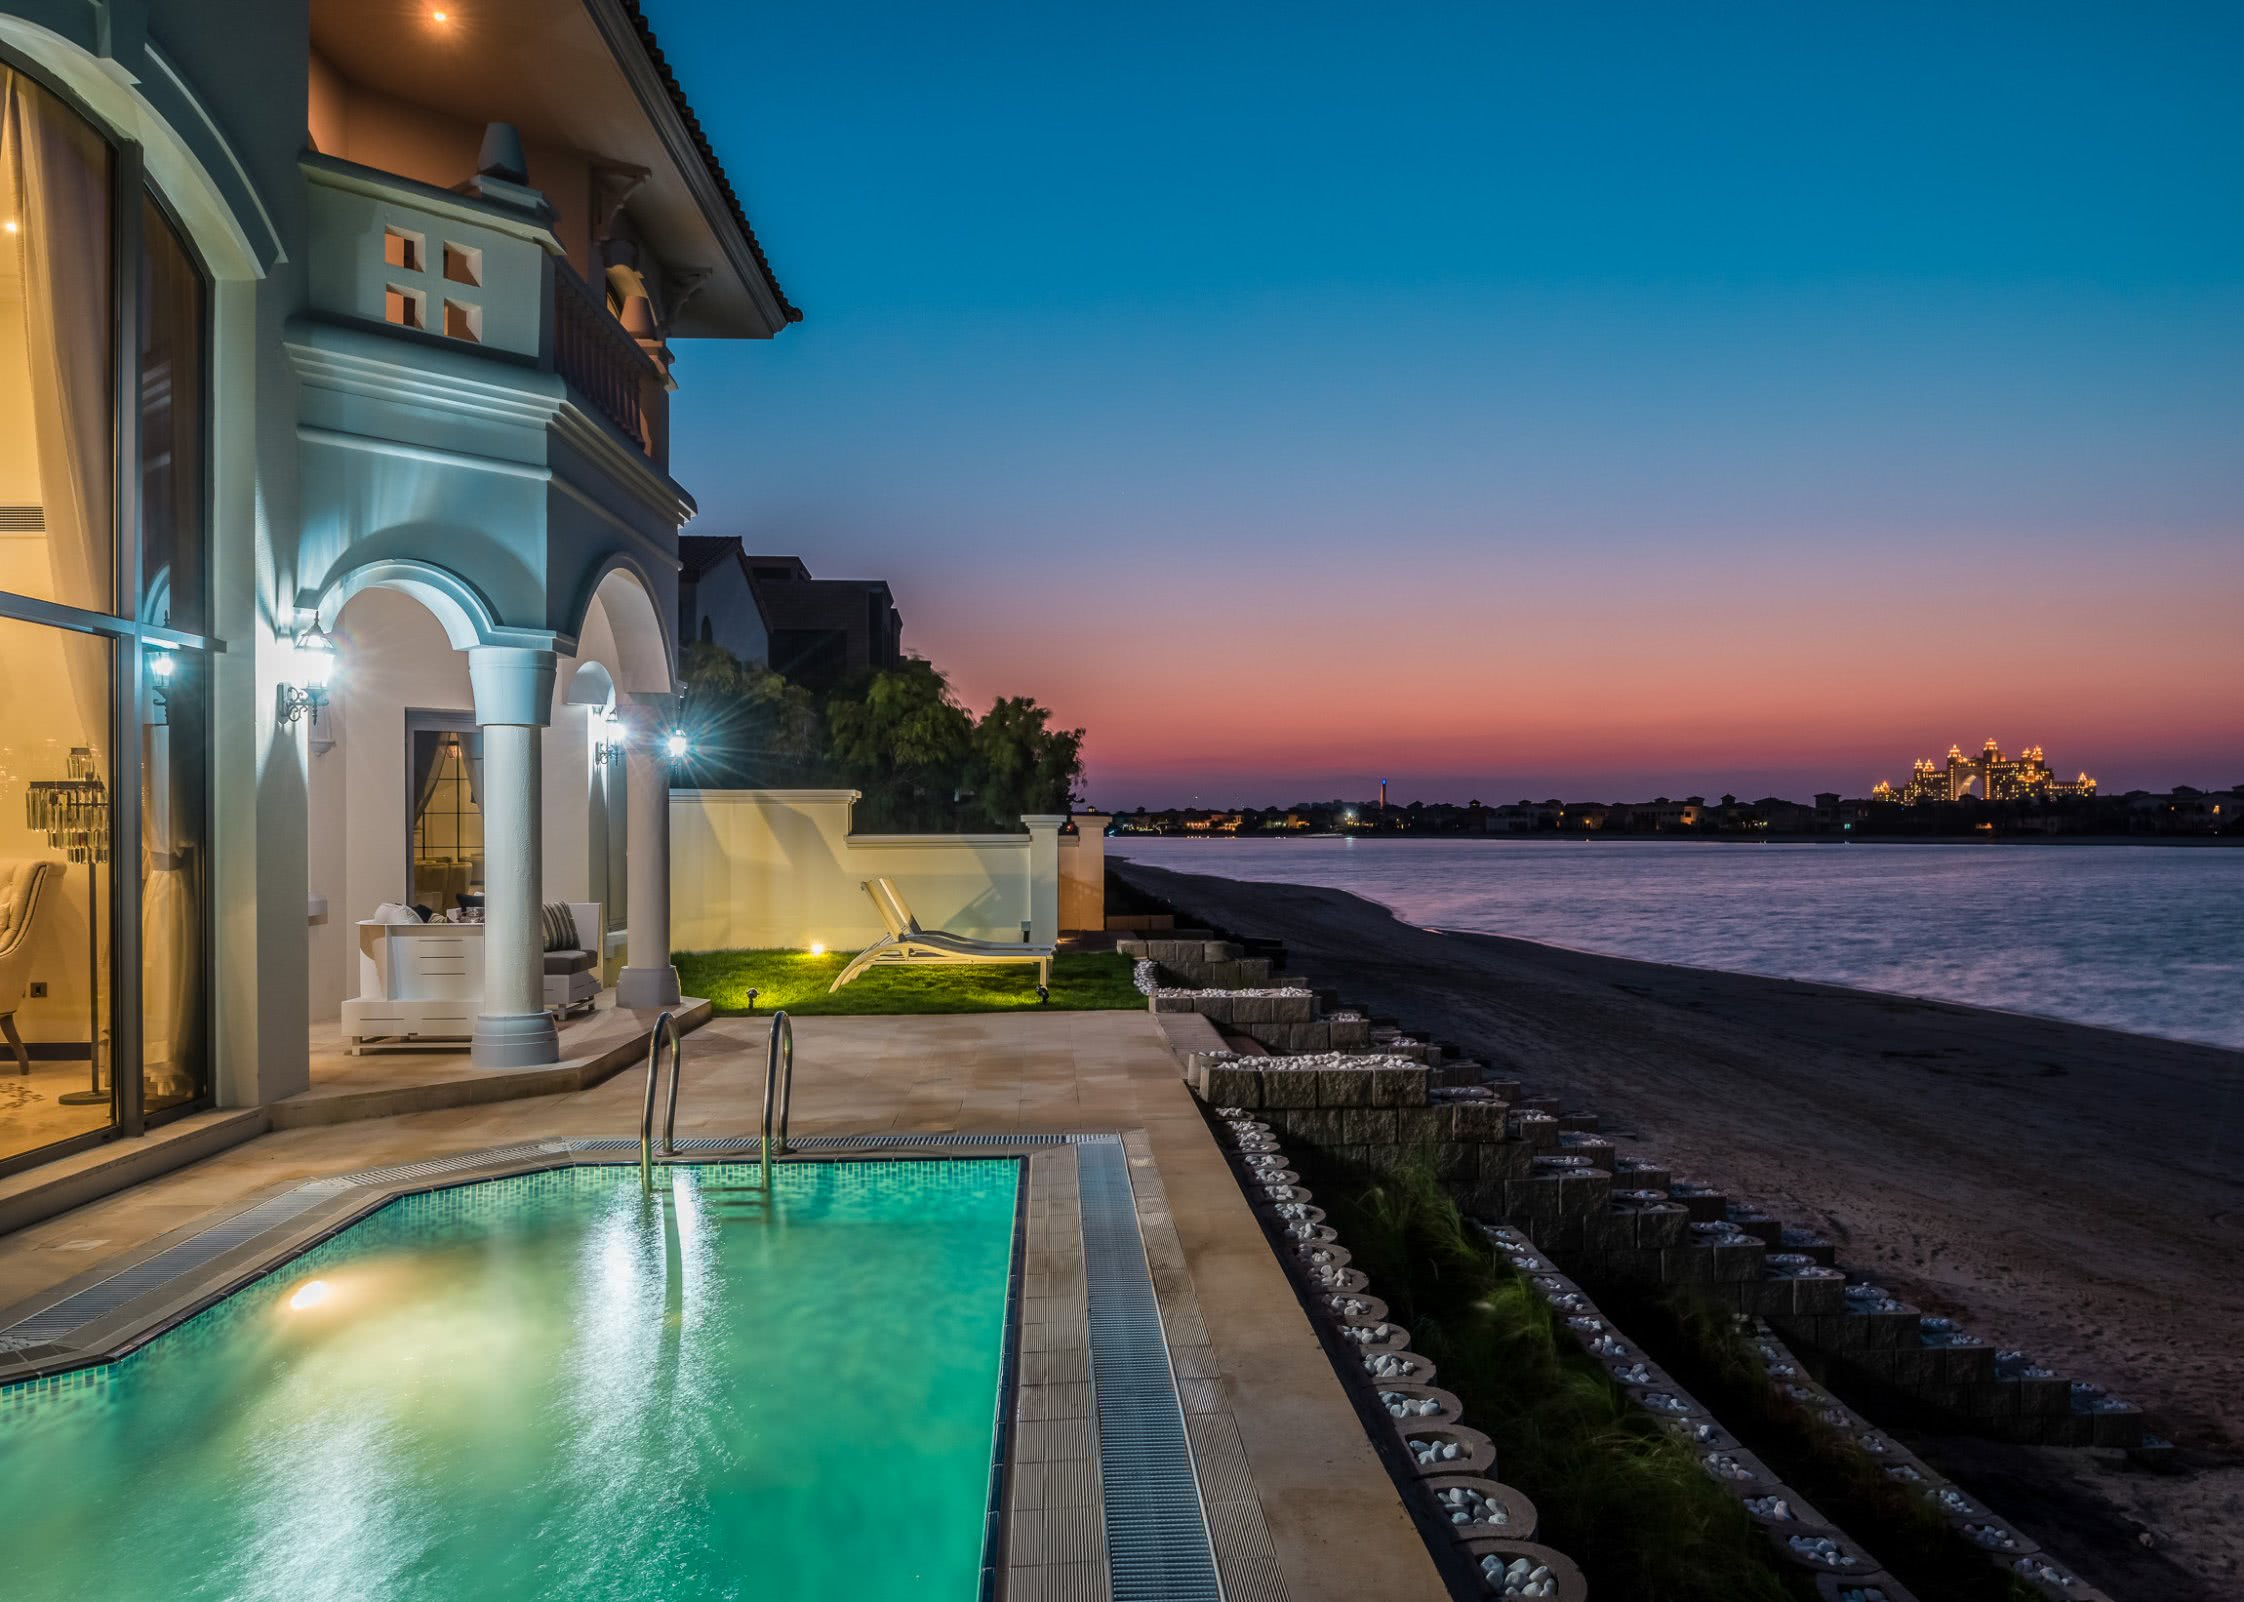 Luxury Villa with lit pool and view over the beach in Dubai - Bachelorette Party Activities for the Break the Bank Bride